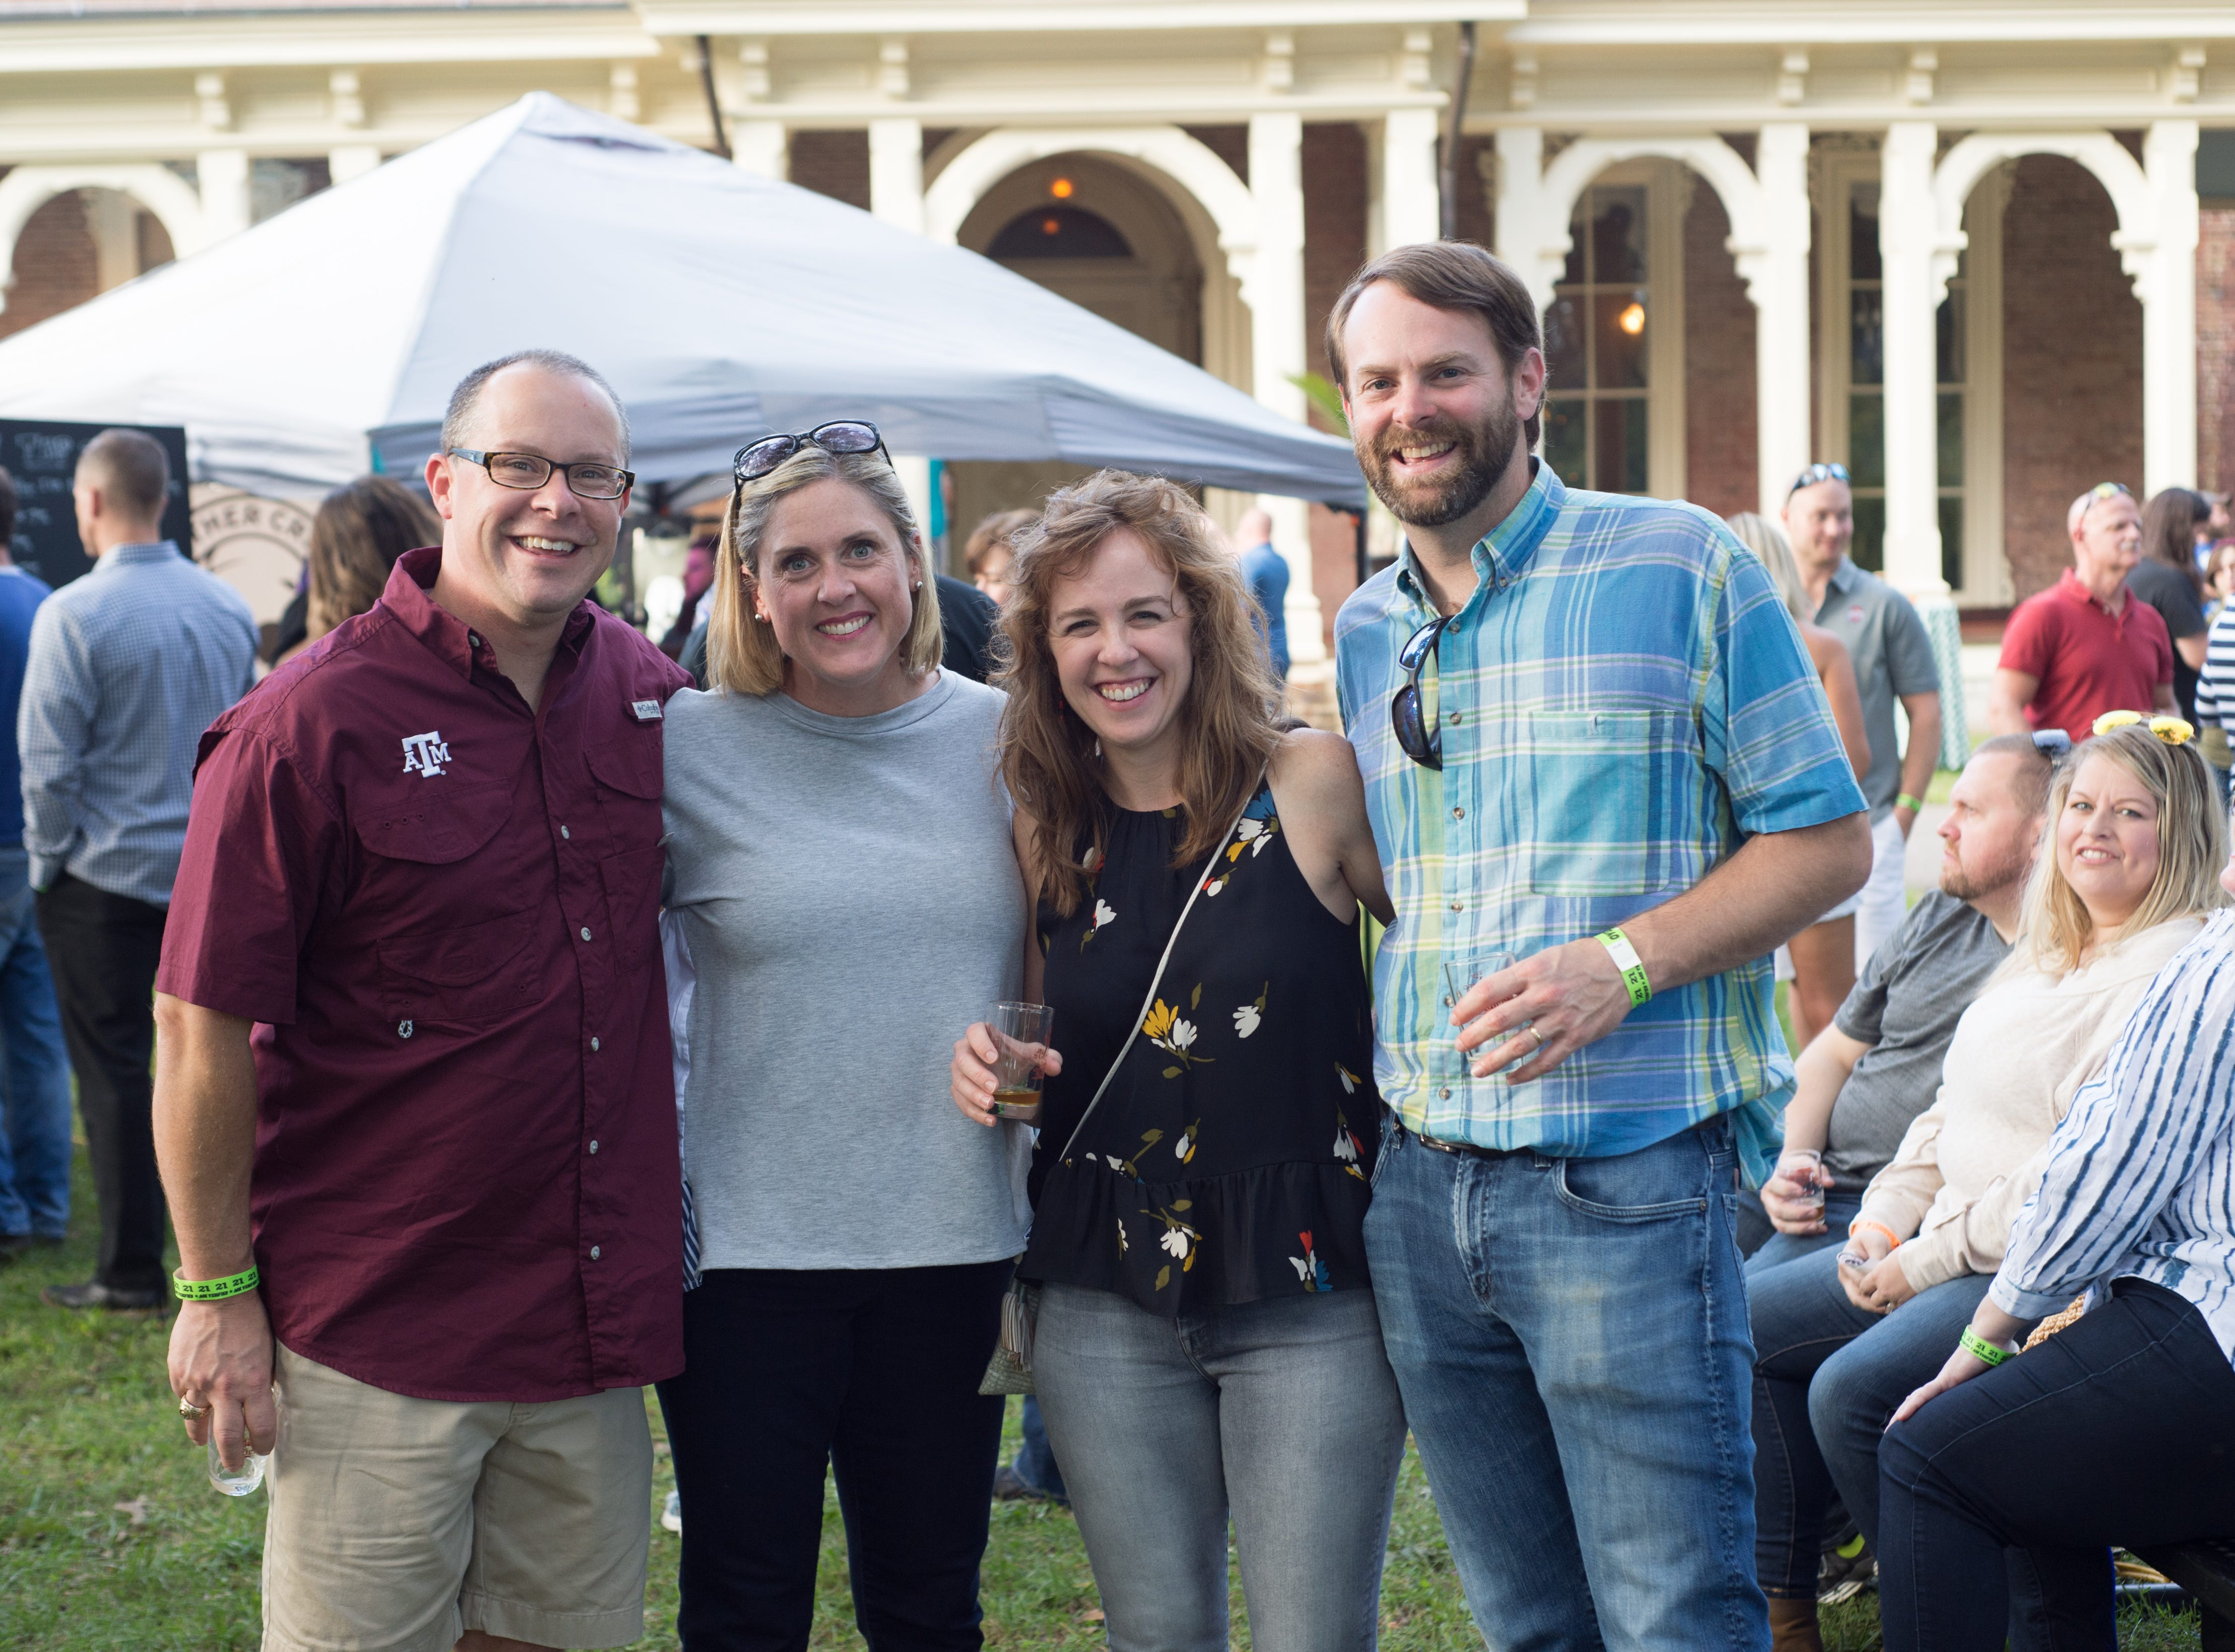 Chris and Amy Jackson and Leah and P.G. Banker enjoy Oktoberfest at Oaklands Mansion in Murfreesboro on Saturday, Sept. 29.